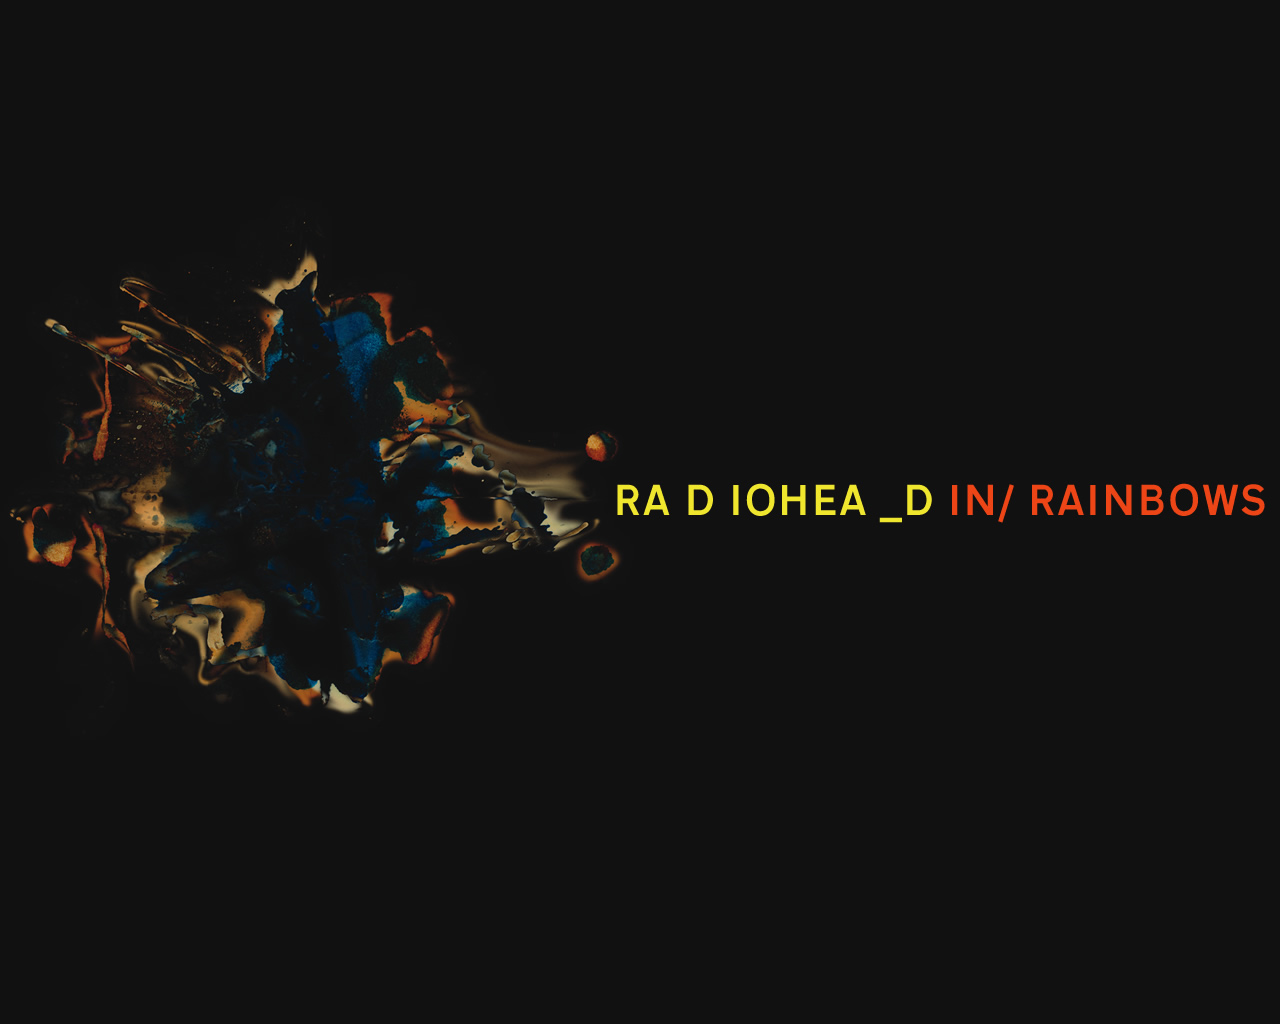 Radiohead Images In Rainbows Hd Wallpaper And Background